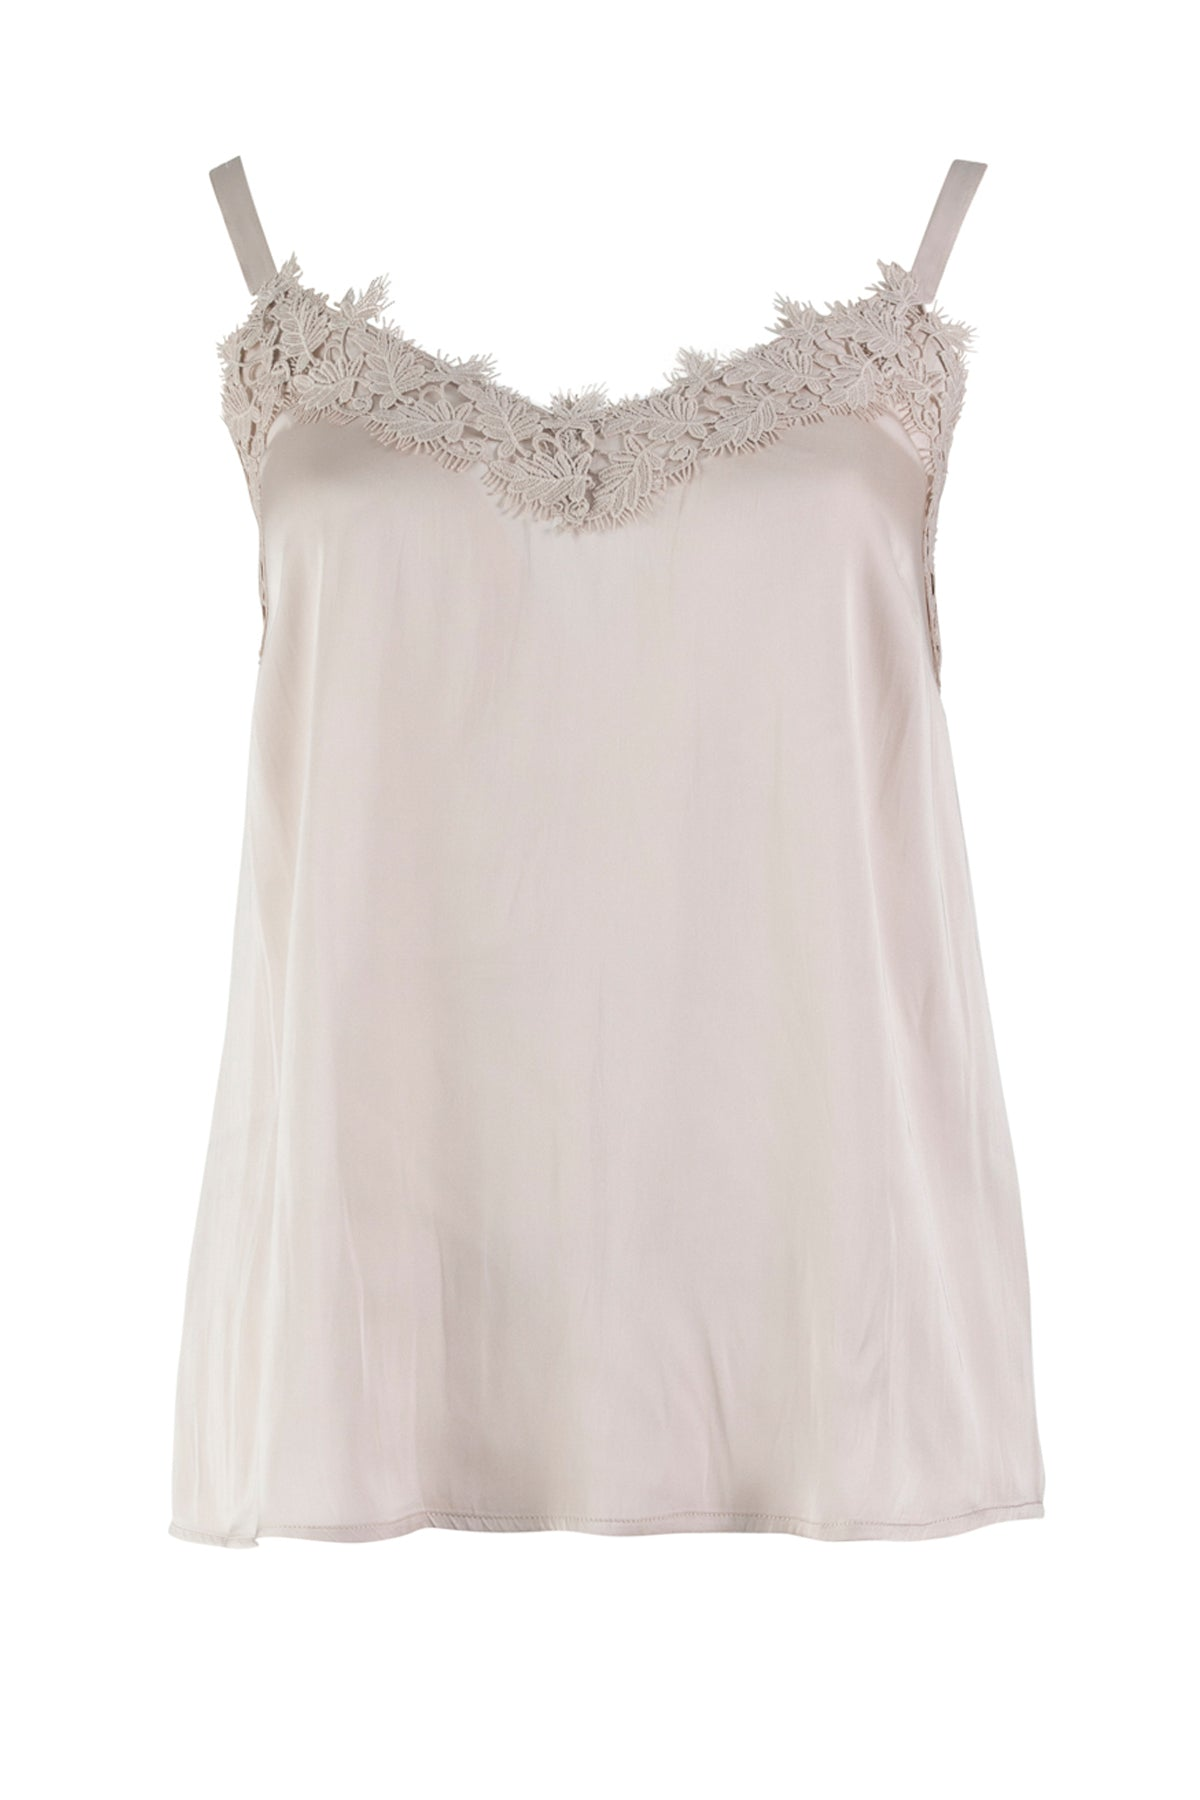 Verge Club Cami in Oyster 6931 Shop Online